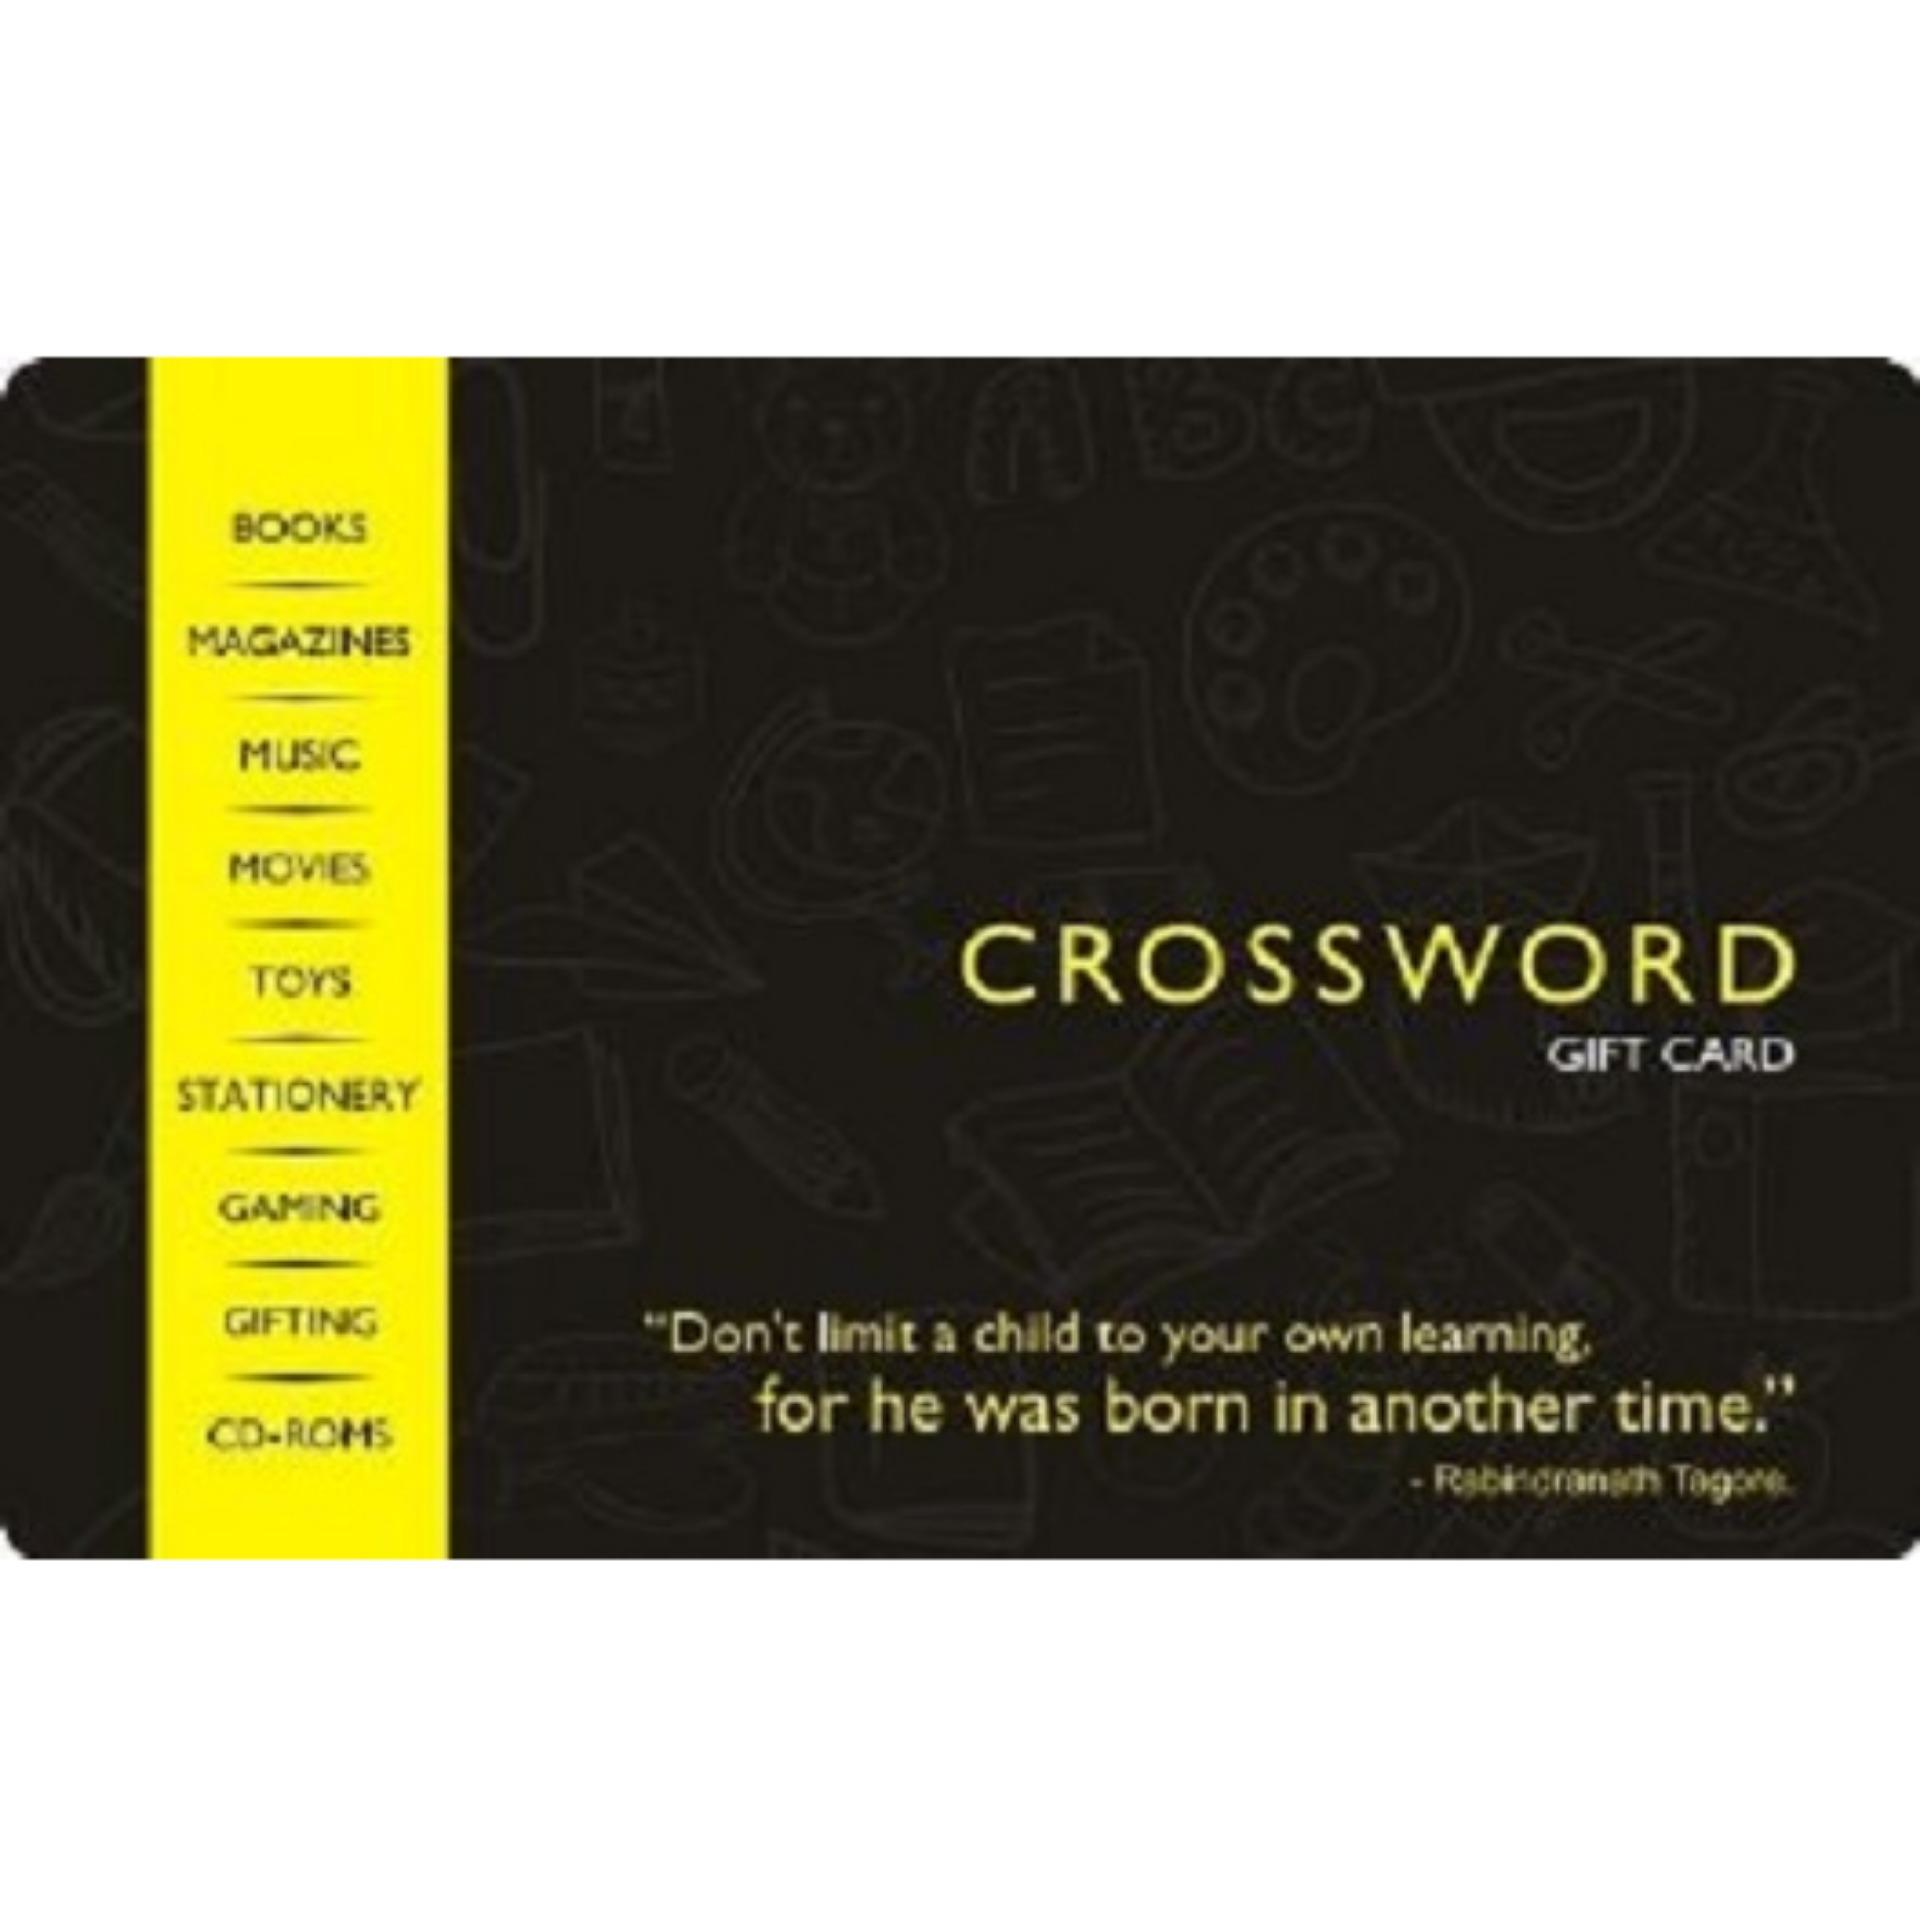 Crossword Digital Gift Cards: Rs. 1005 By Qwikcilver Store.